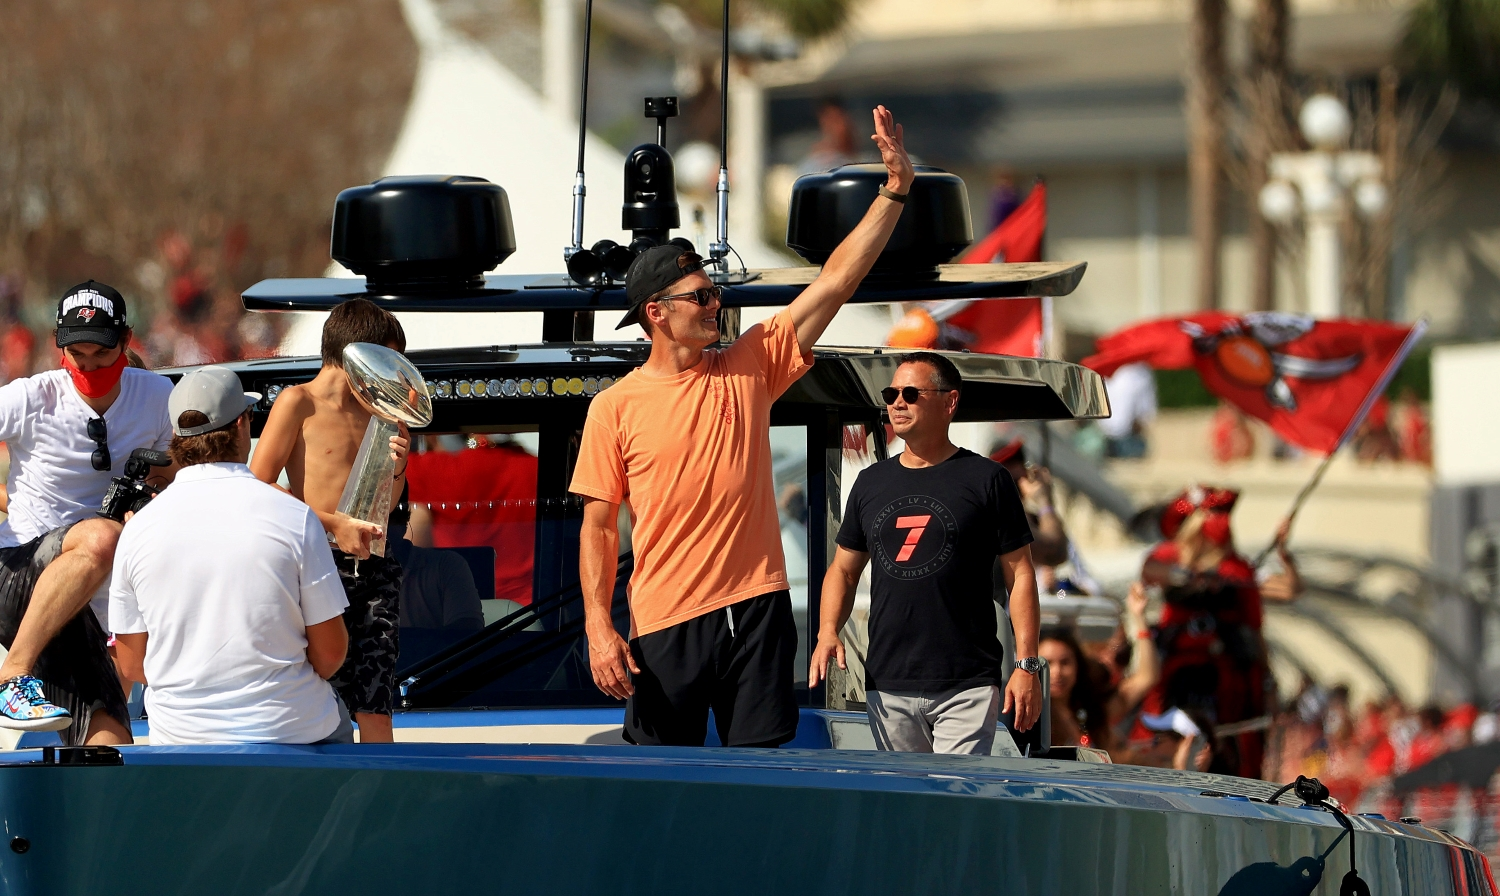 Tom Brady of the Tampa Bay Buccaneers celebrates their Super Bowl 55 victory during a boat parade through the city.